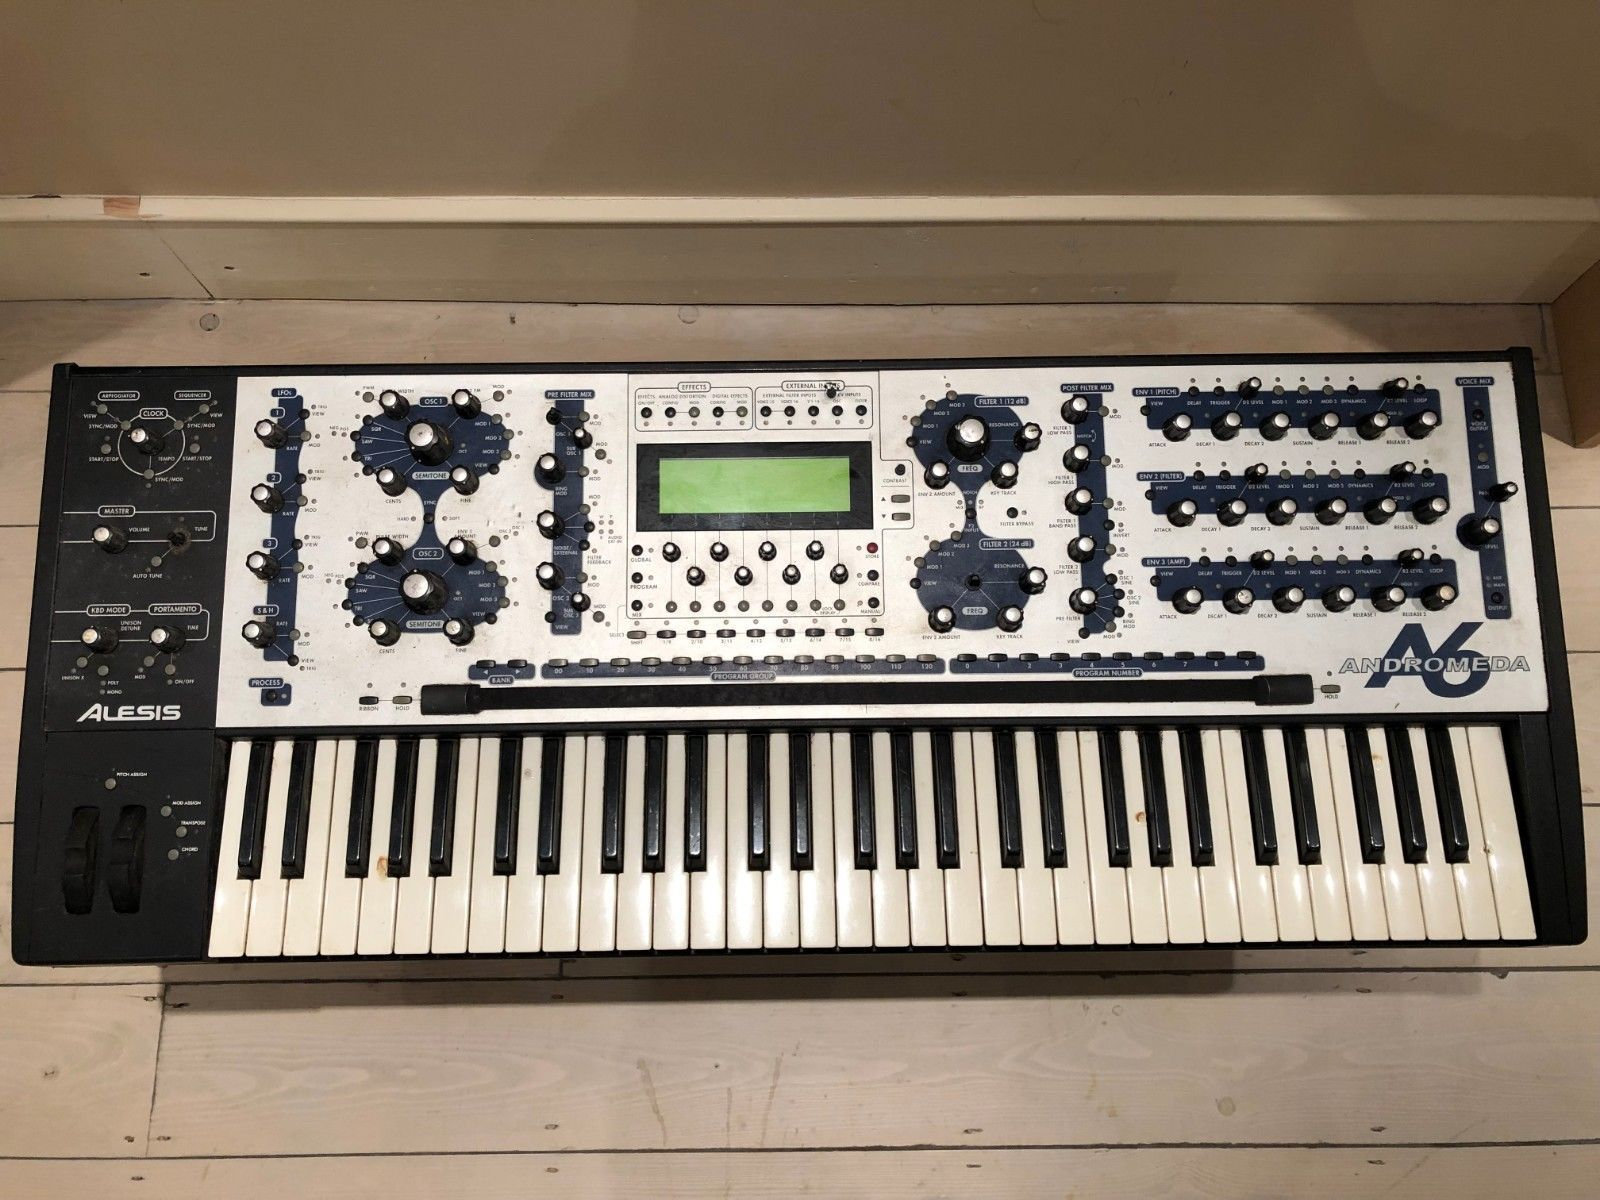 alesis andromeda a6 synthesizer synth ebay keyboards in 2019 keyboard drum machine. Black Bedroom Furniture Sets. Home Design Ideas